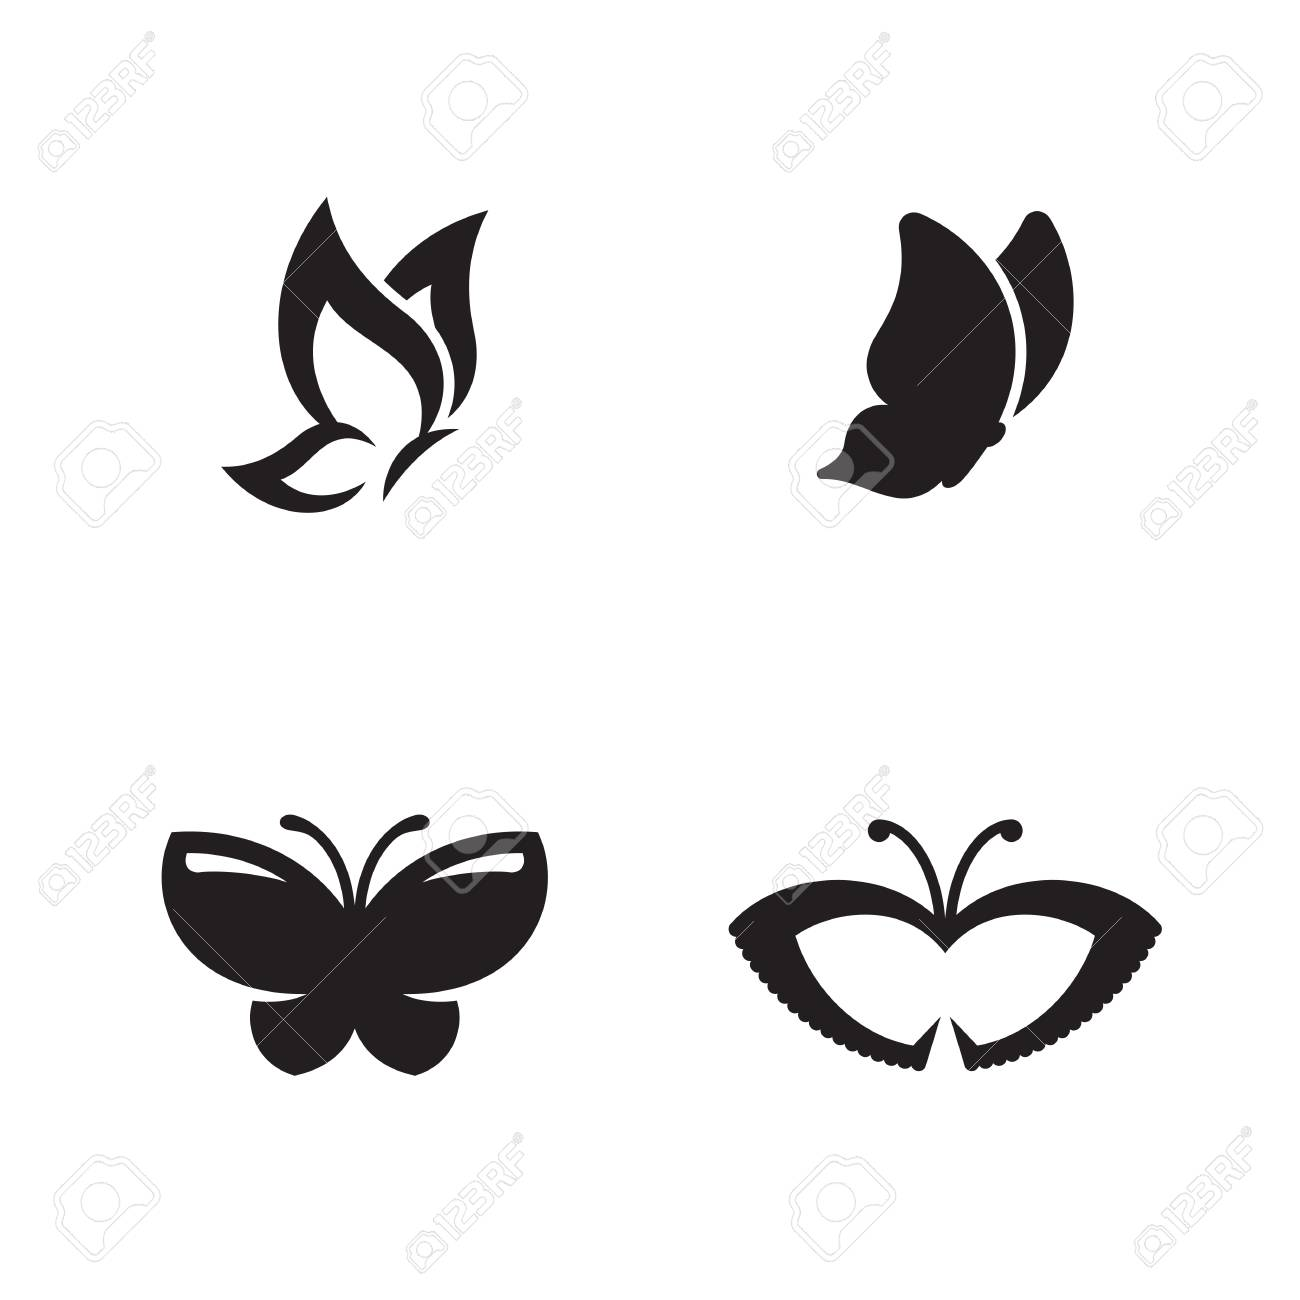 Butterfly Vector - Butterfly Vector Logo. Black Icons On A White Background Royalty ...